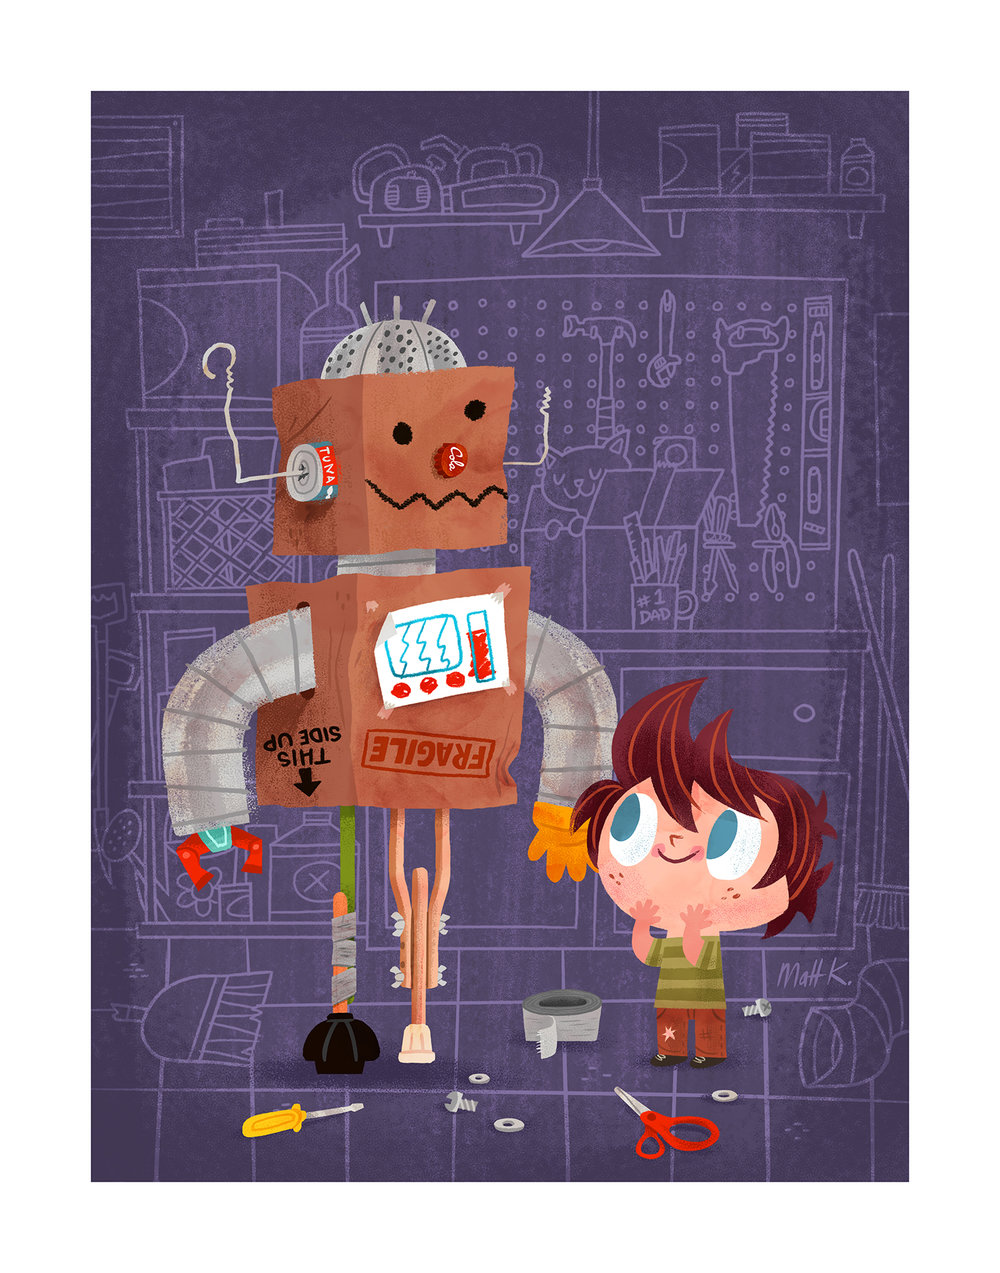 'Building Friendship' by Matt Kaufenberg